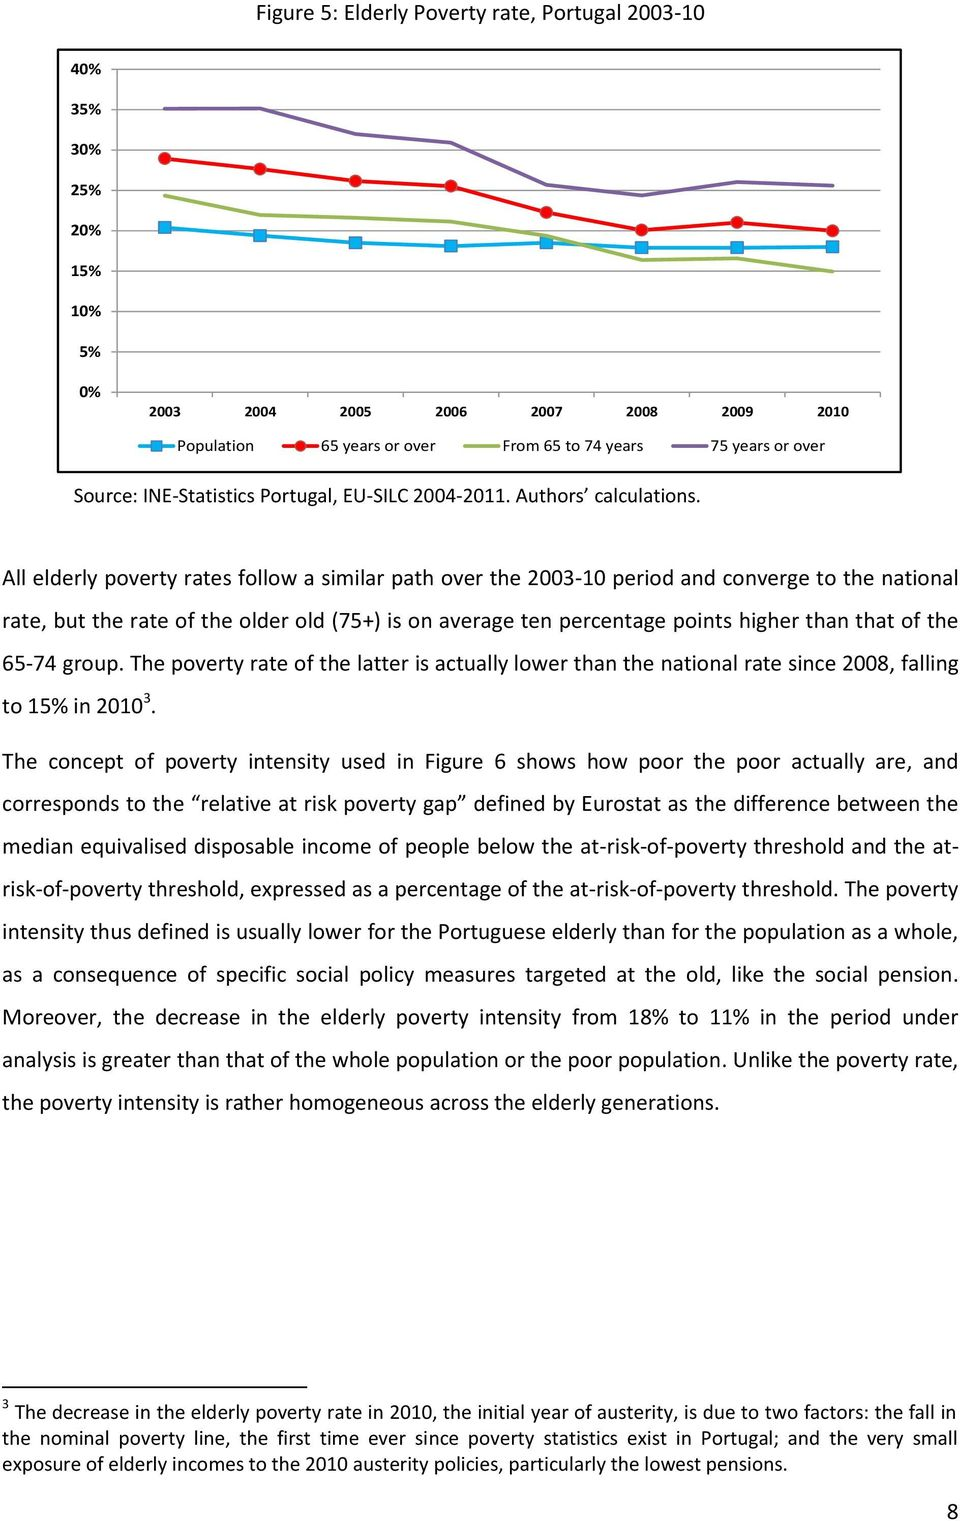 All elderly poverty rates follow a similar path over the 2003-10 period and converge to the national rate, but the rate of the older old (75+) is on average ten percentage points higher than that of